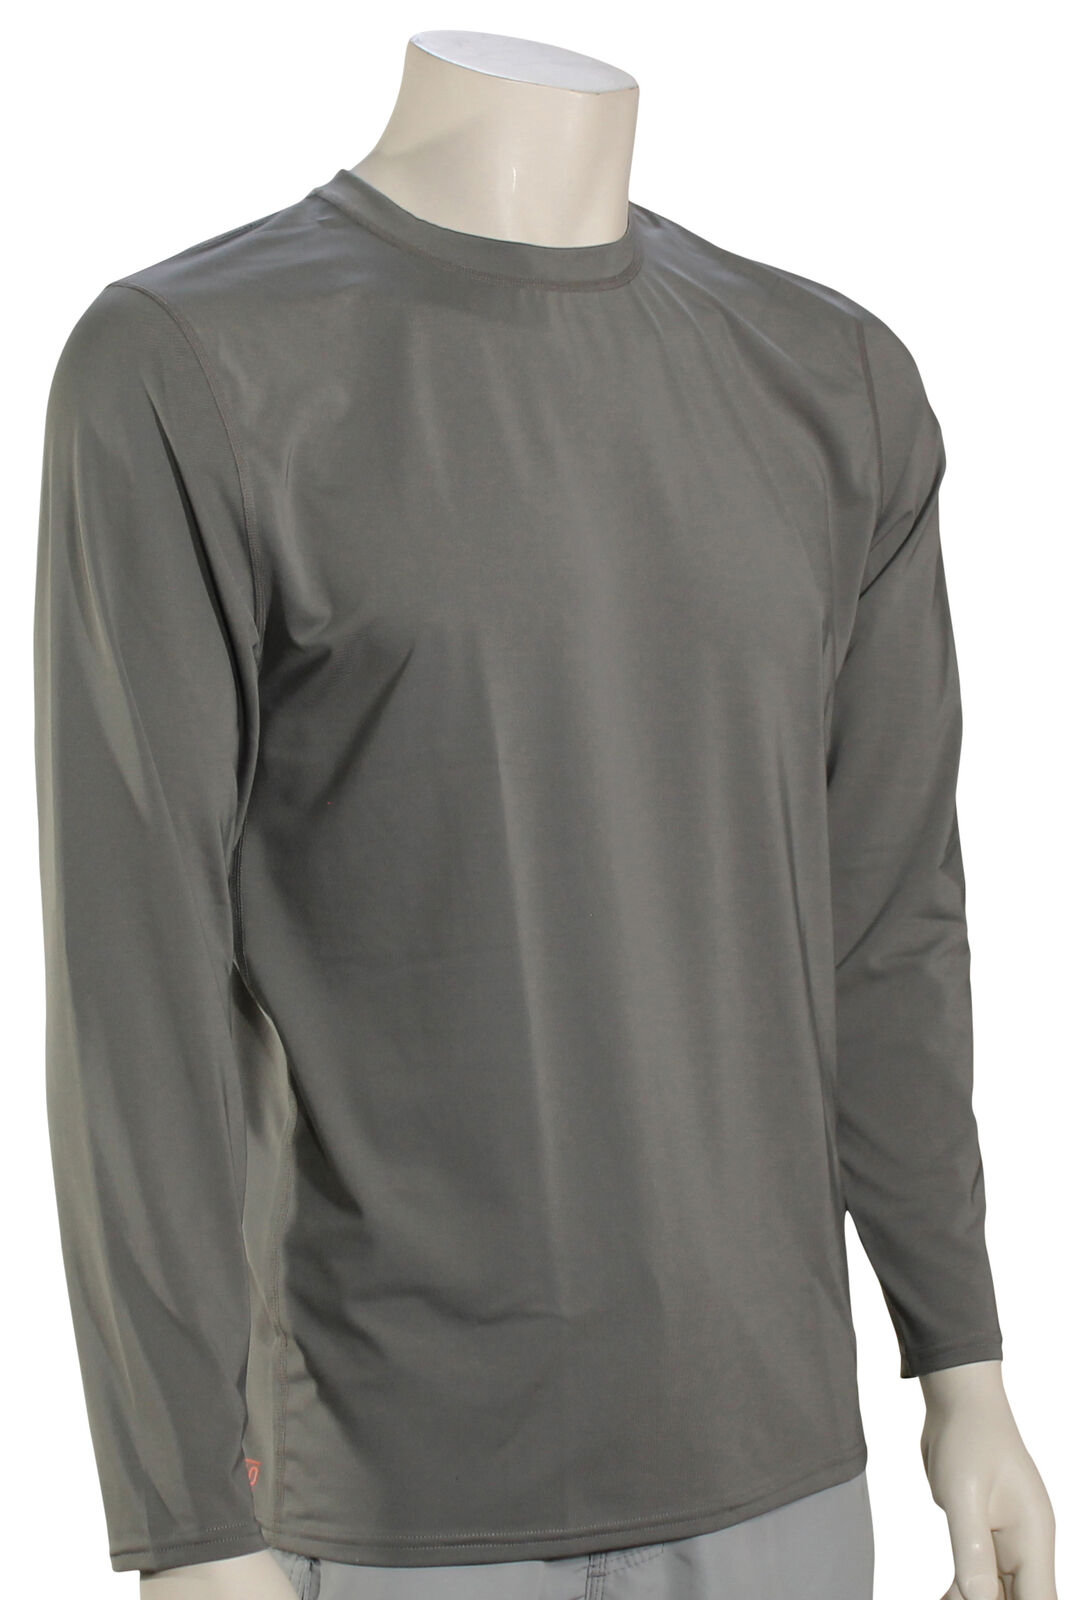 DaKine Heavy Duty LS Surf Shirt - Carbon - New